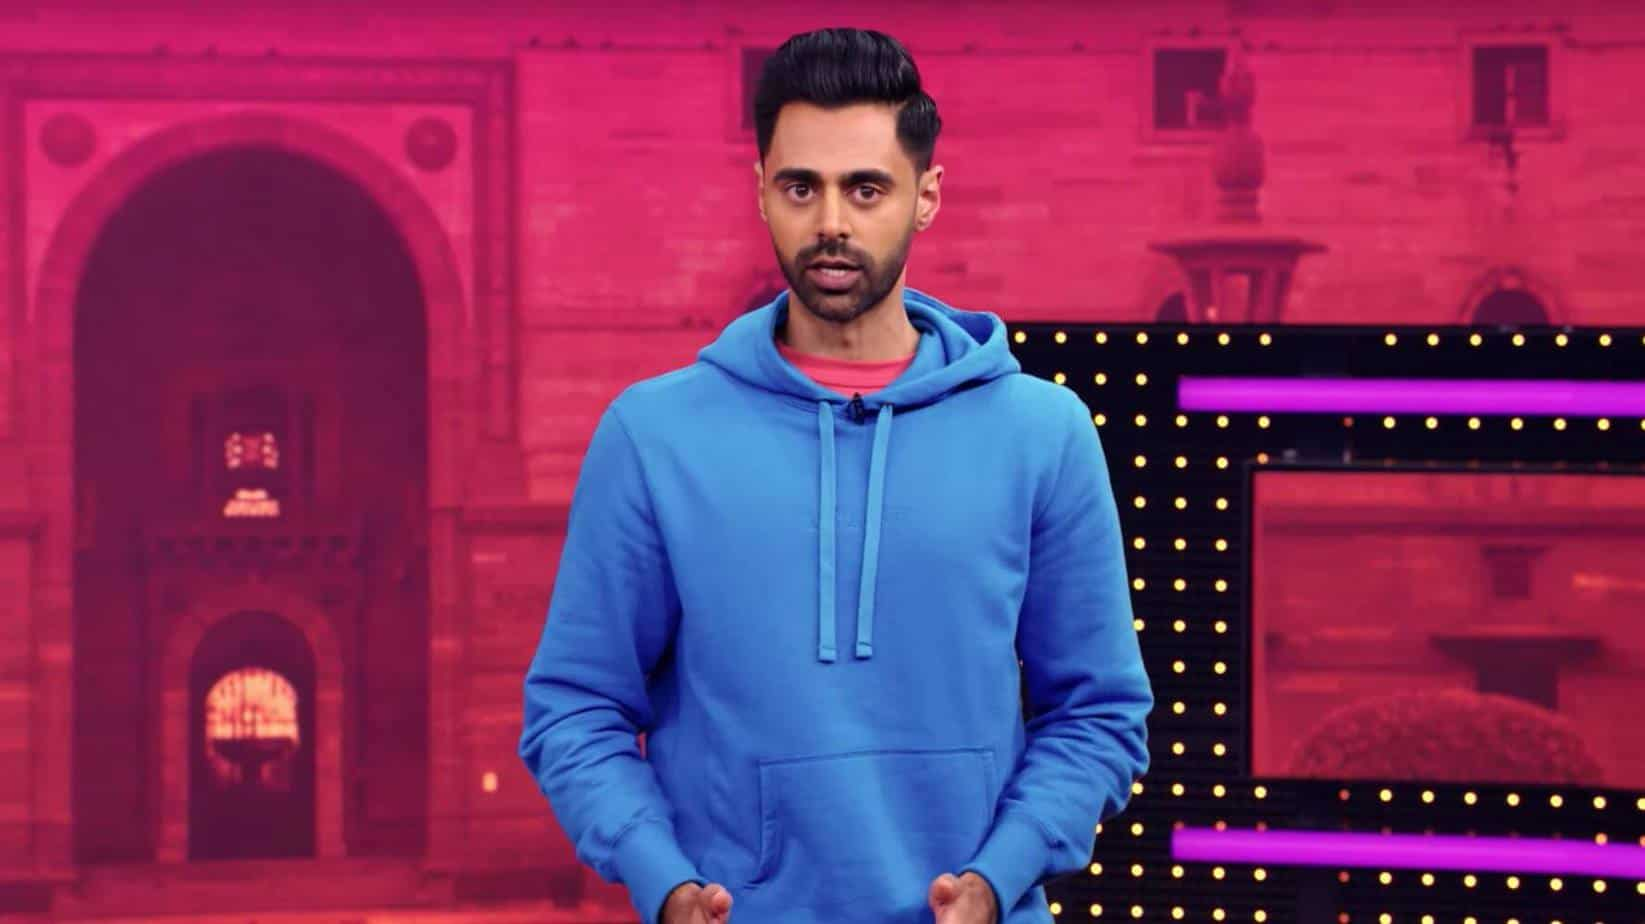 Hasan Minhaj joins The Morning Show after Netflix's cancellation of Patriot Act